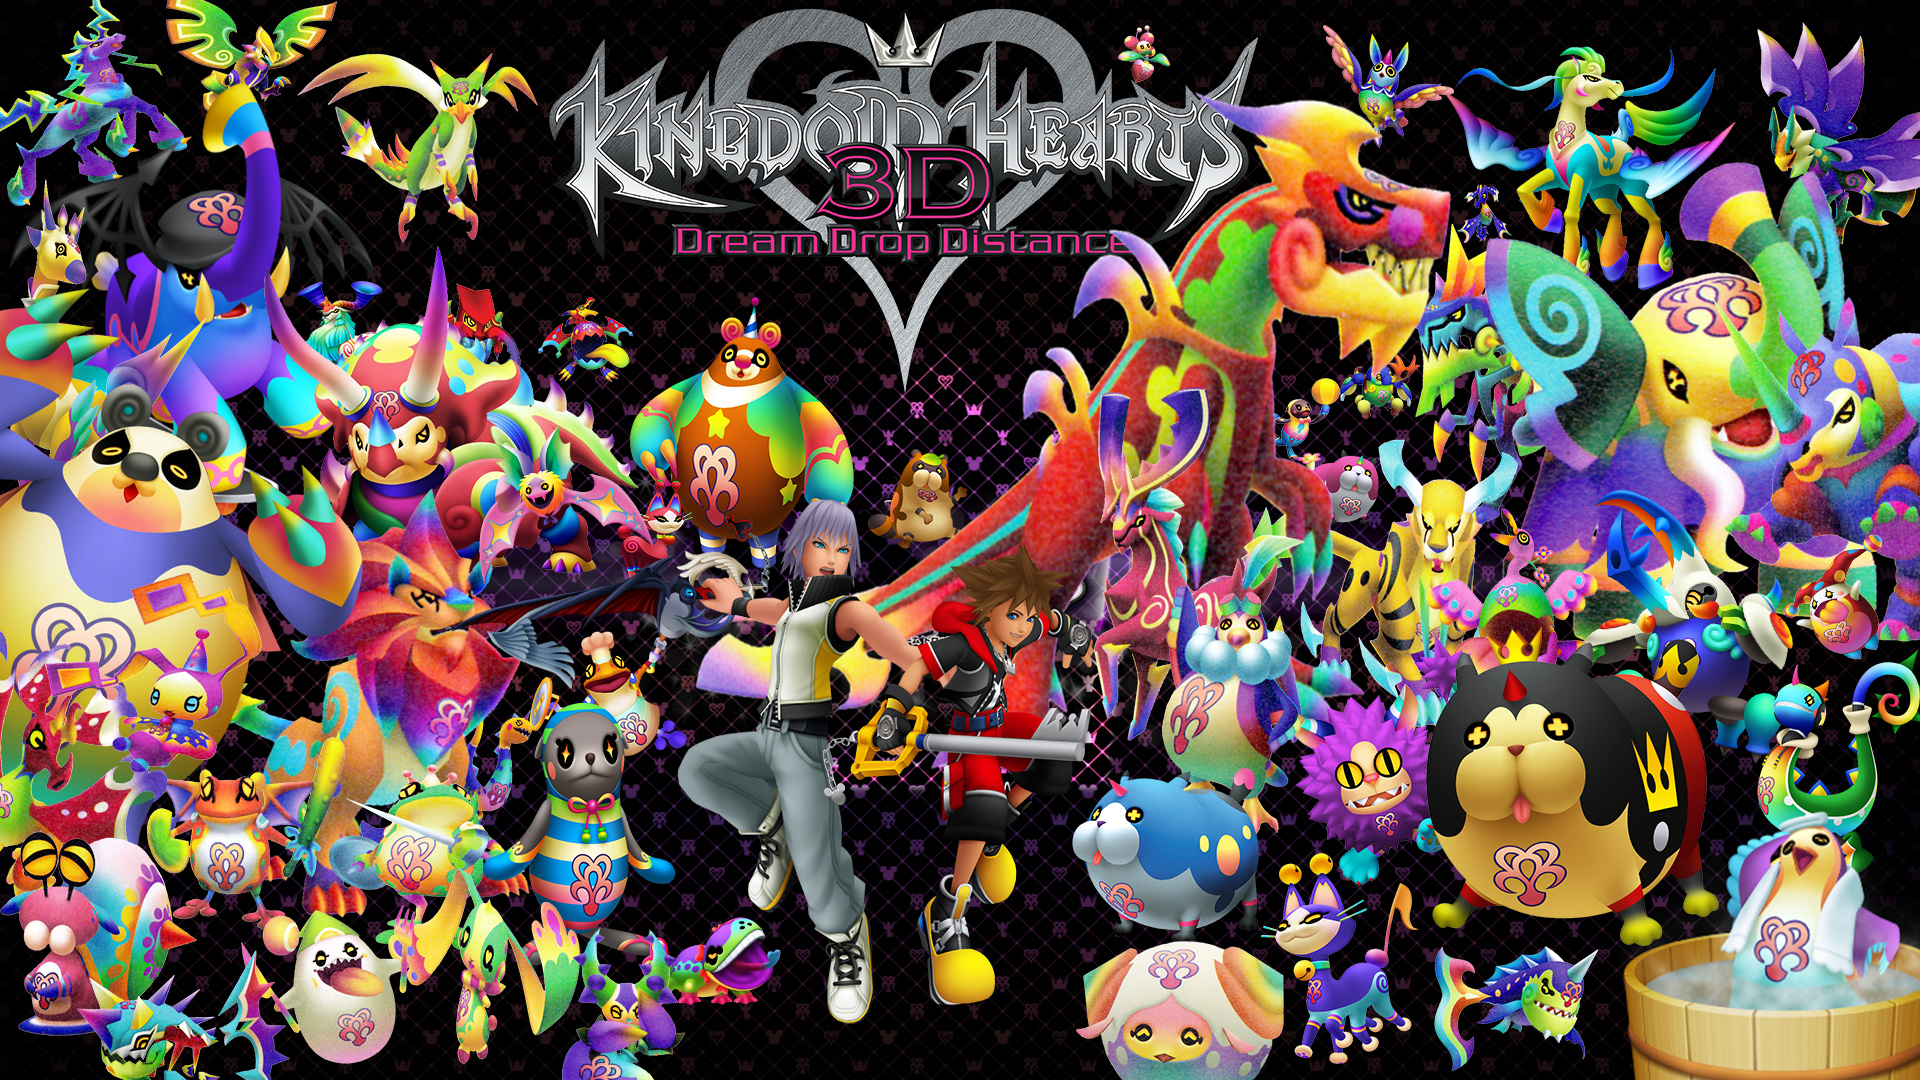 Kingdom Hearts Dream Drop Distance Dream Eaters By The Dark Mamba